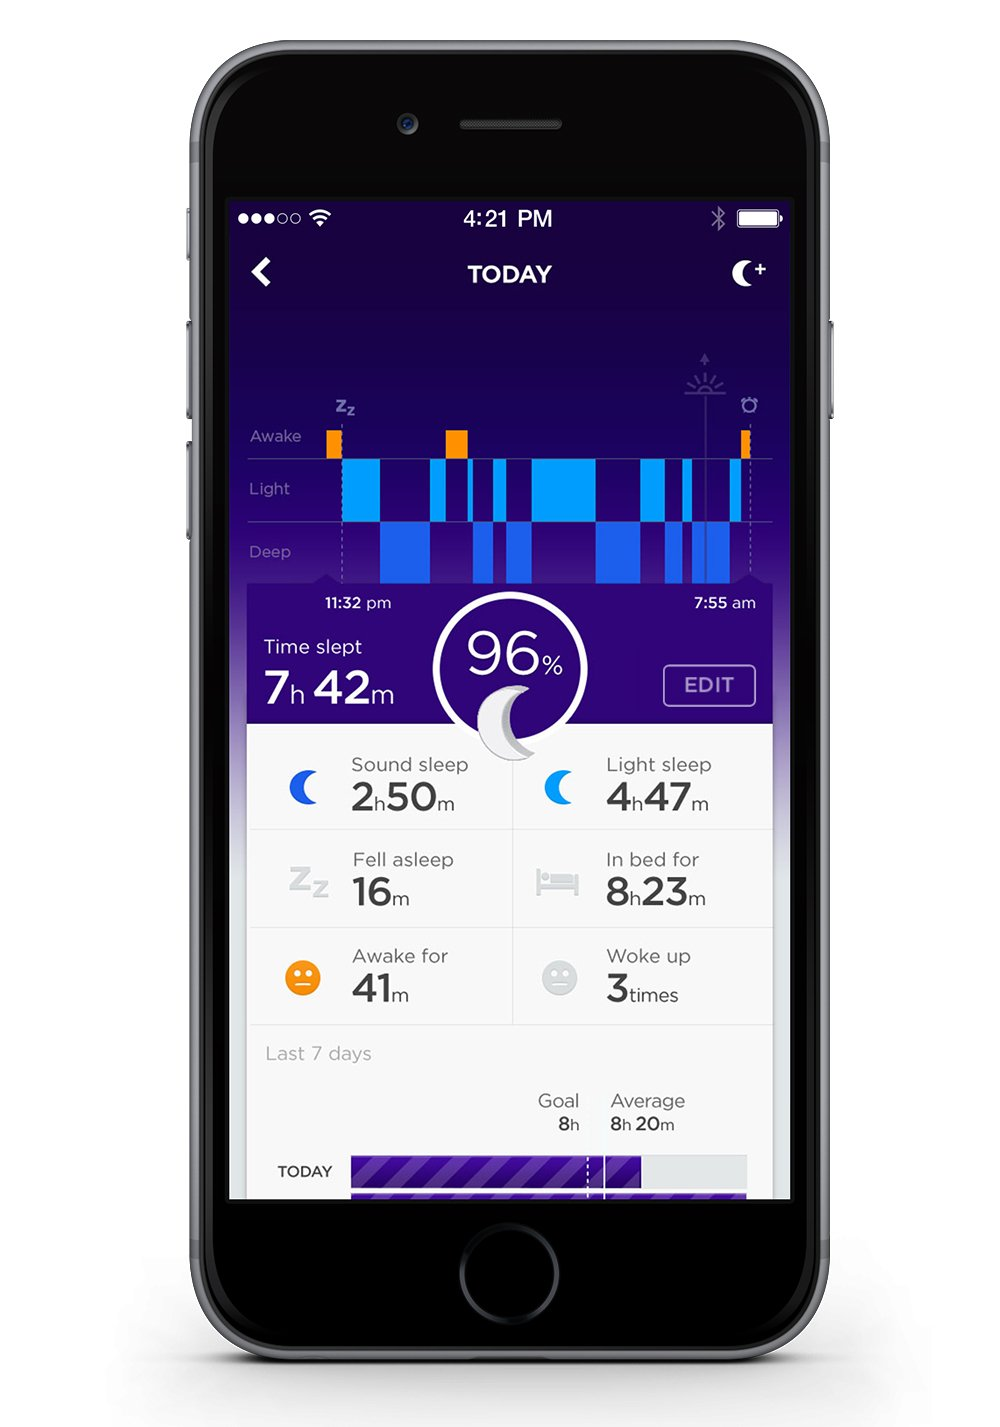 Amazon up2 by jawbone activity sleep tracker violet circle amazon up2 by jawbone activity sleep tracker violet circle classic flat strap amazon exclusive cell phones accessories biocorpaavc Image collections